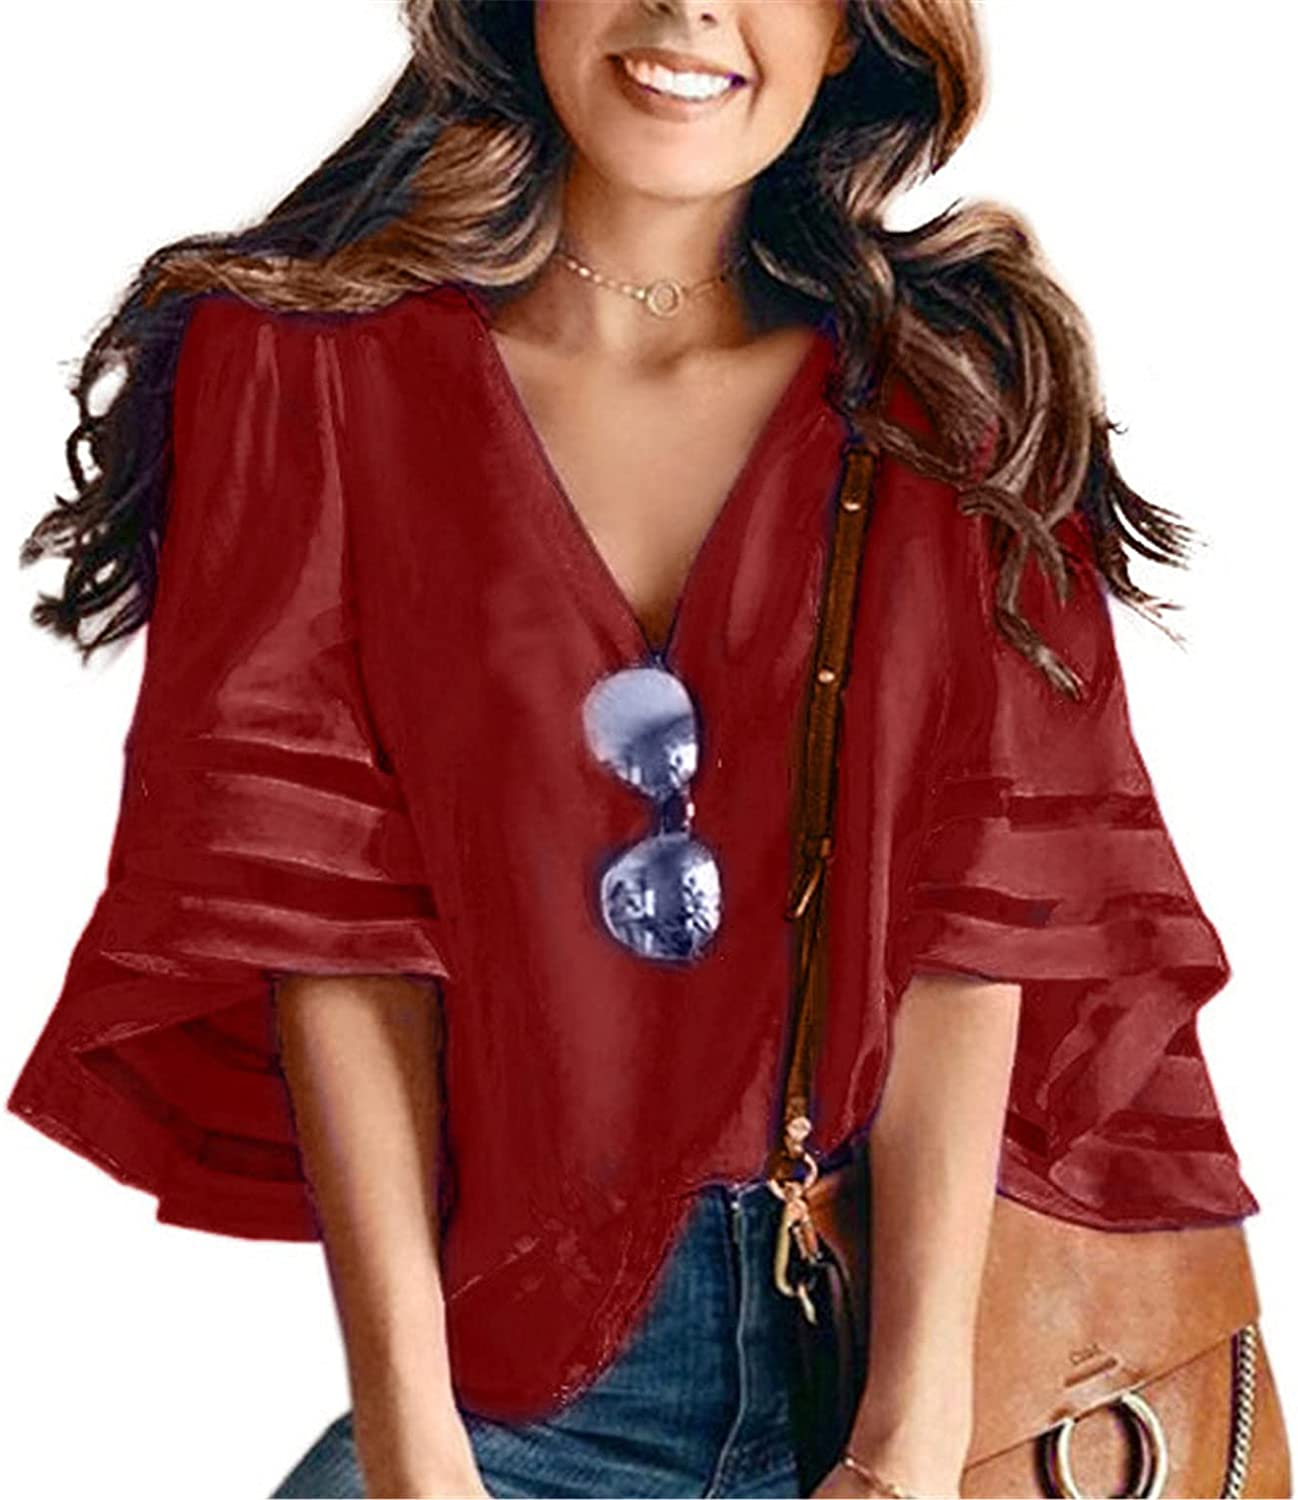 Andongnywell Super-cheap Women's Casual Top 3 4 Blouse Bell New sales Mesh Sleeve Tie